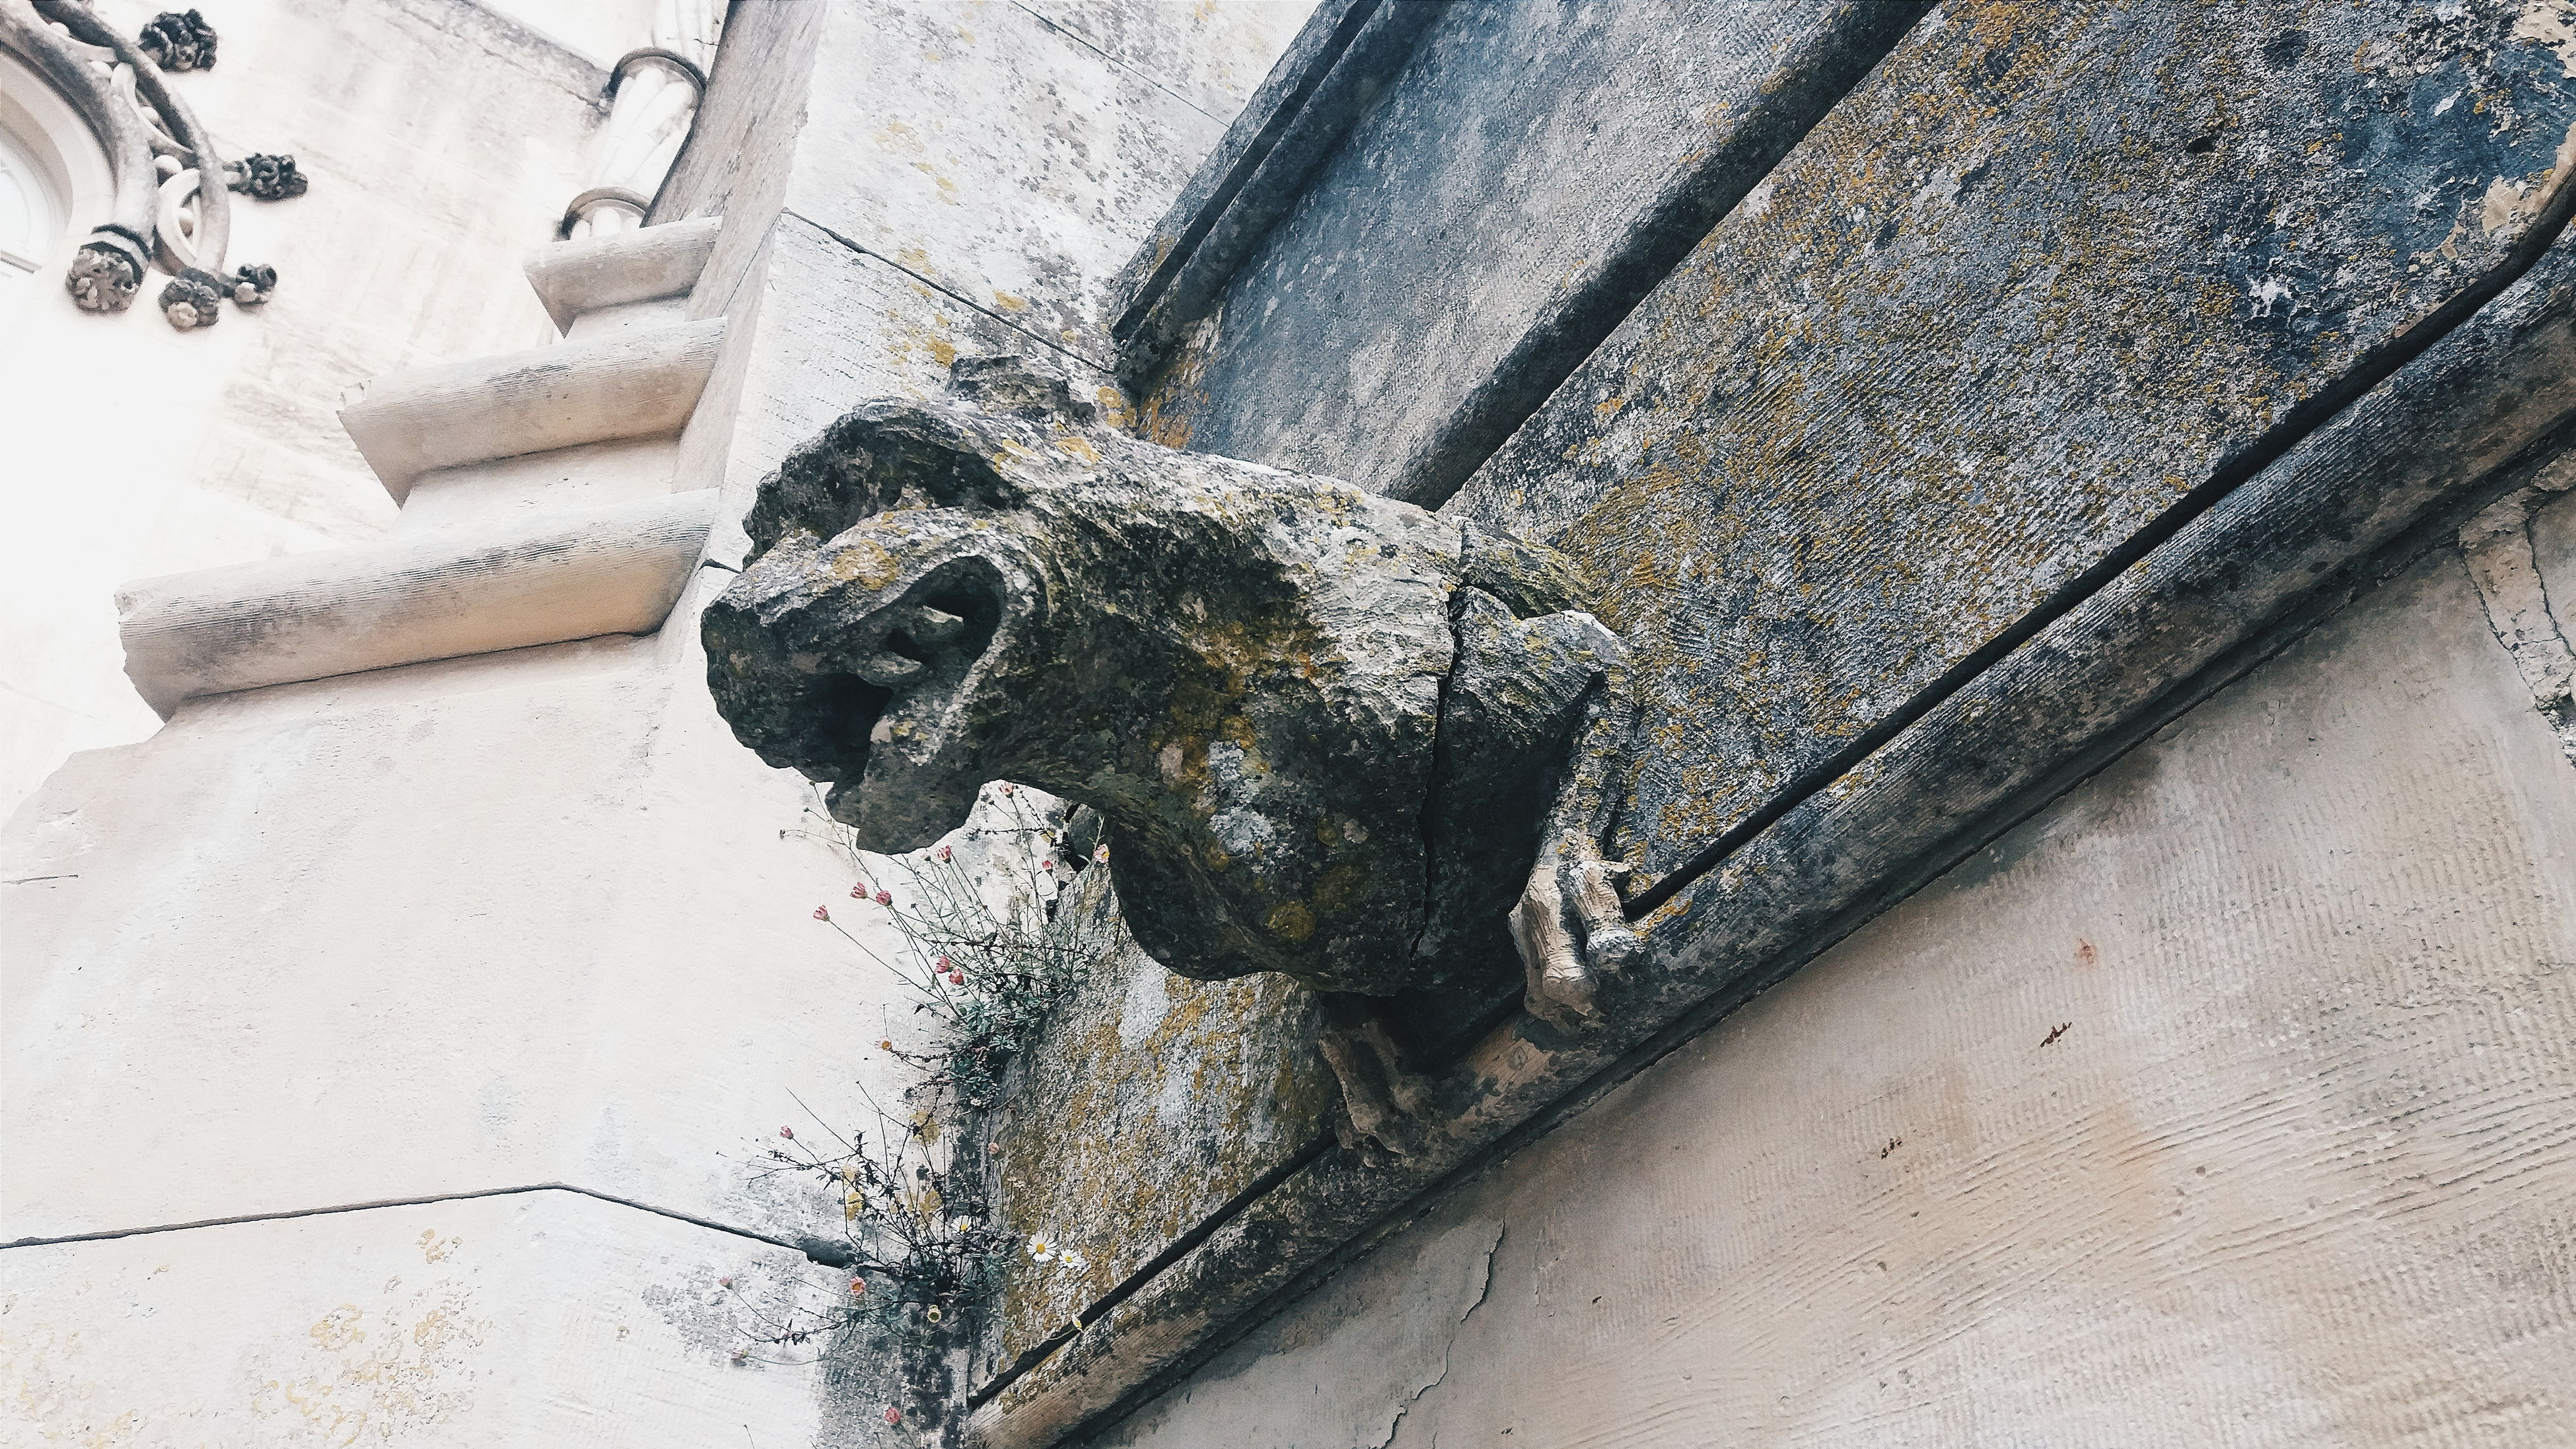 old, gargoyle, no people, day, outdoors, high angle view, sculpture, history, close-up, architecture, animal themes